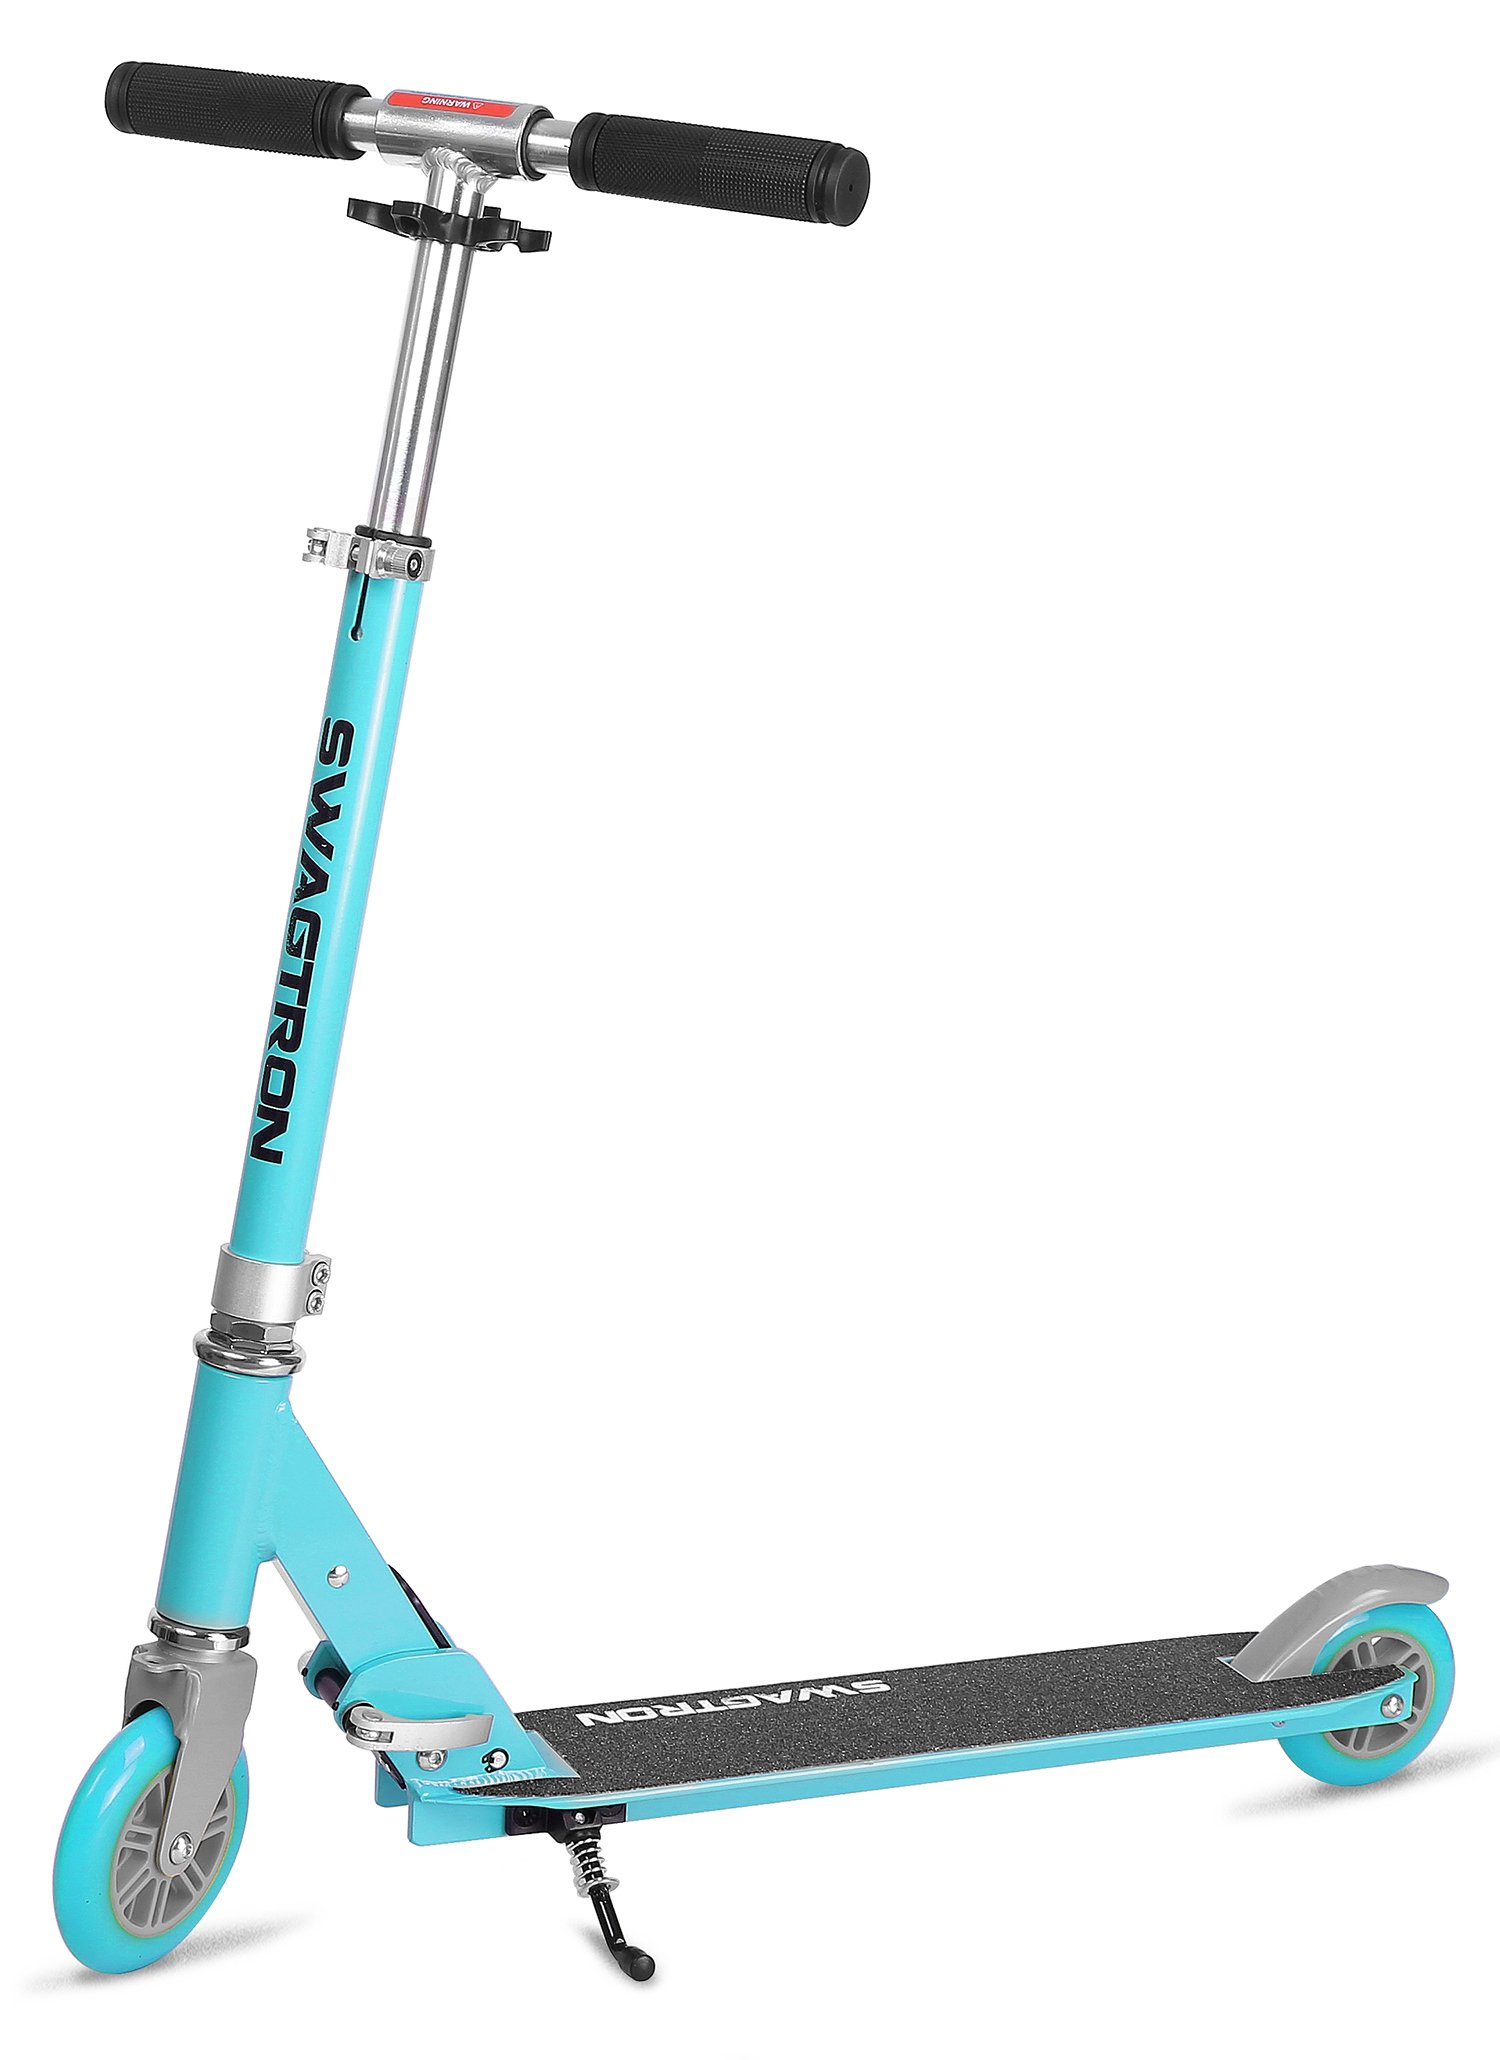 "K1 Girl or Boy Kick Scooter 2 Wheel Adjustable 40"" Kids up to 72"" Teens, 220Lb Weight Limit, ABEC-9 Bearings, Lightweight 6.42Lbs, Next Gen Fold-n-Lock System + Kickstand (Blue/Silver)"